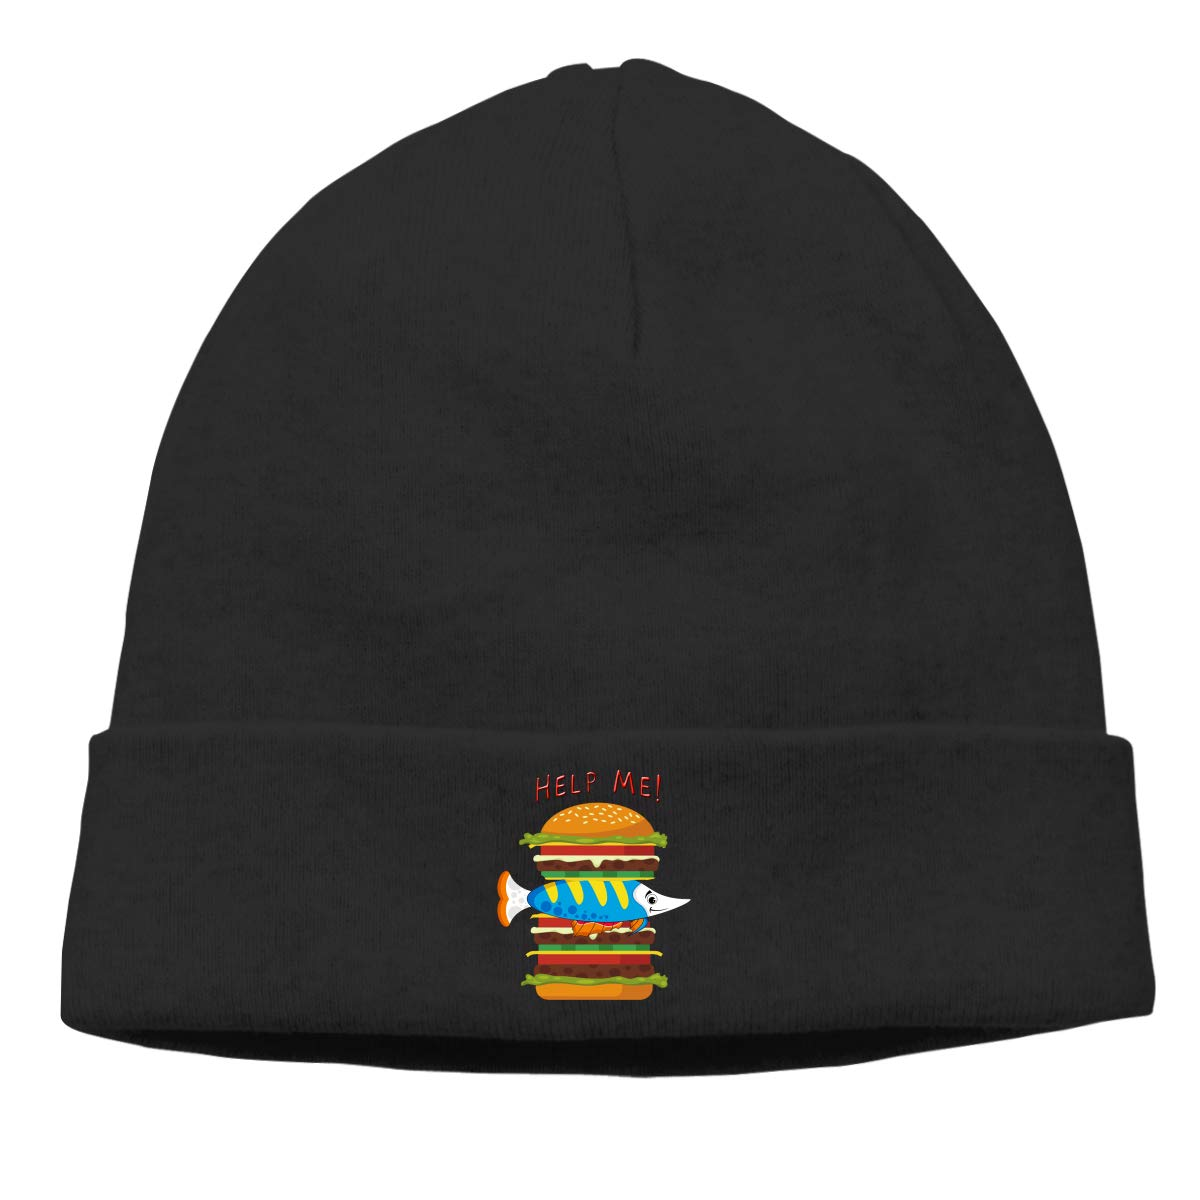 nordic runes Fish Hamburger Help Me Beanie Hat Winter Warm Knit Skull Cap  for Mens Womens at Amazon Men s Clothing store  fb3cf58d6252